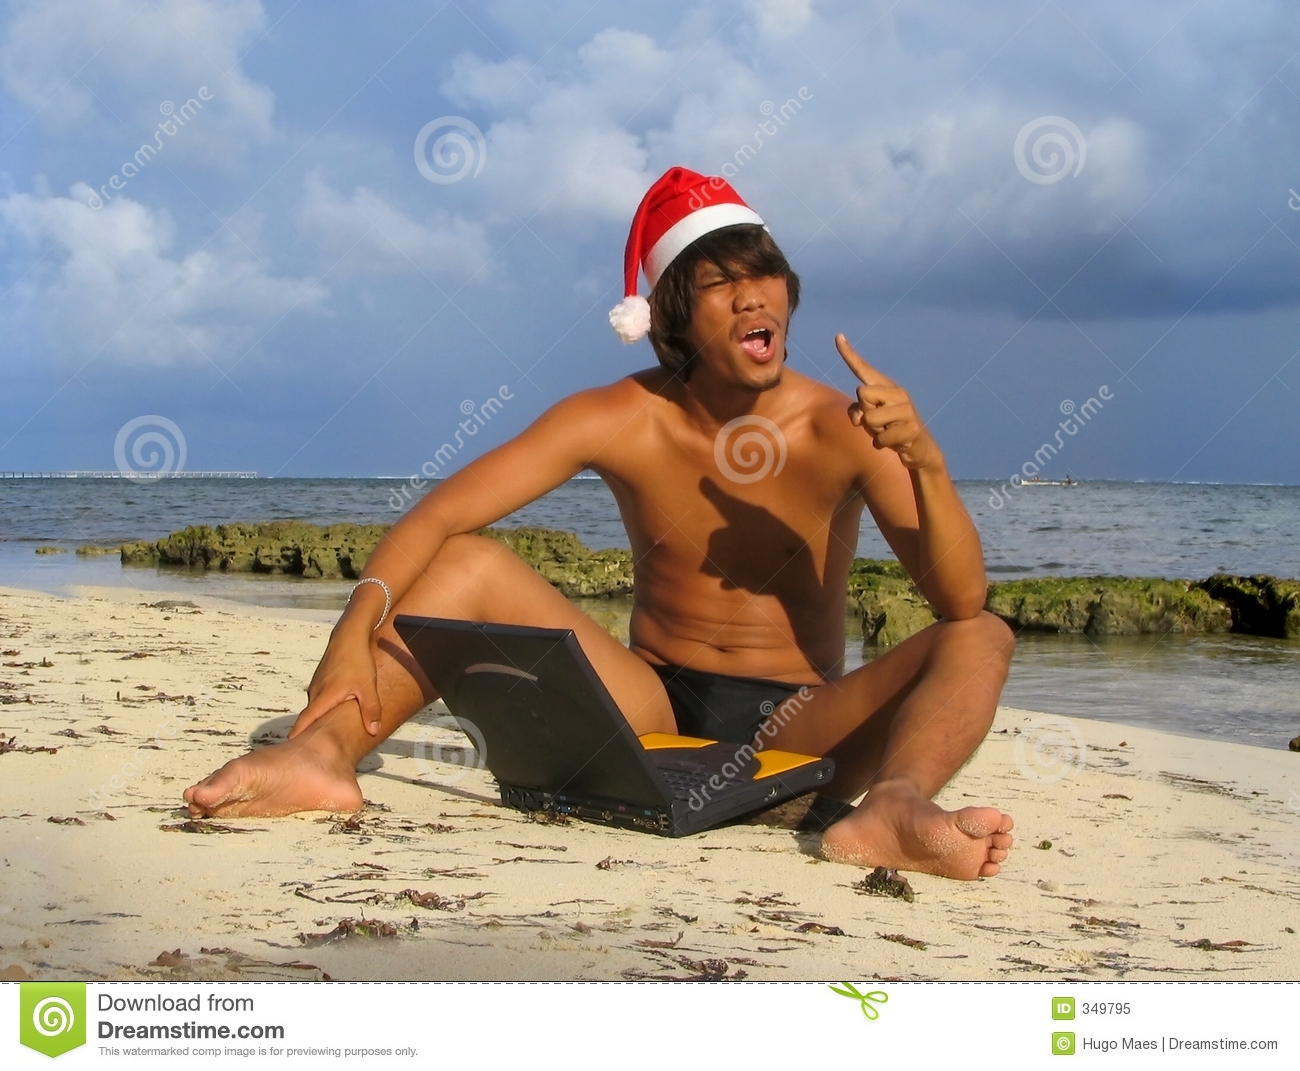 Asian Santa On Beach With Laptop Royalty Free Stock Photo ...: https://www.dreamstime.com/royalty-free-stock-photo-asian-santa-beach-laptop-image349795